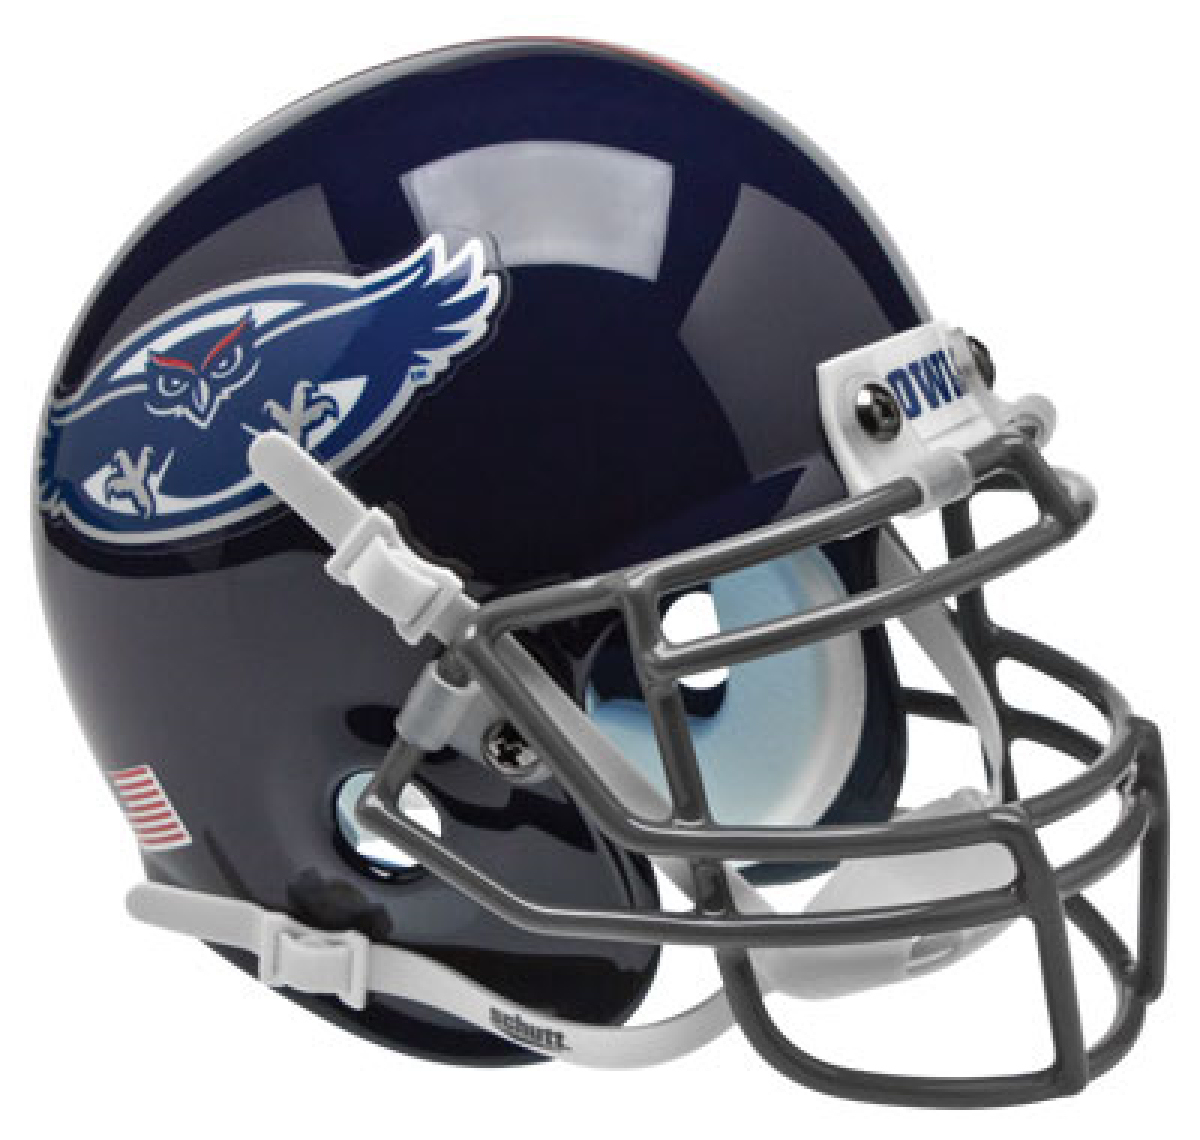 Florida Atlantic Owls Mini XP Authentic Helmet Schutt